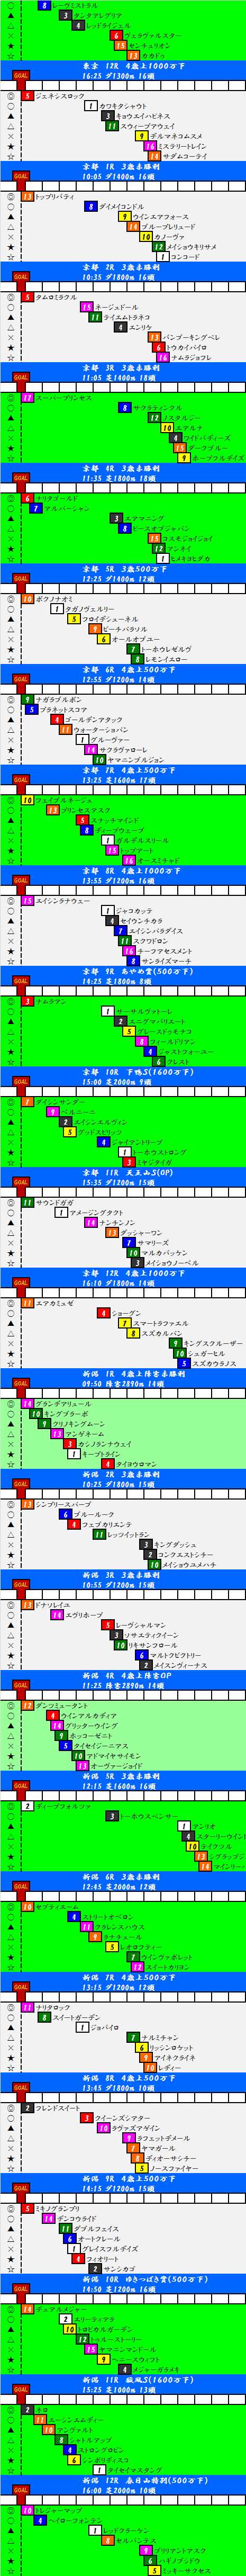 2015050202.png